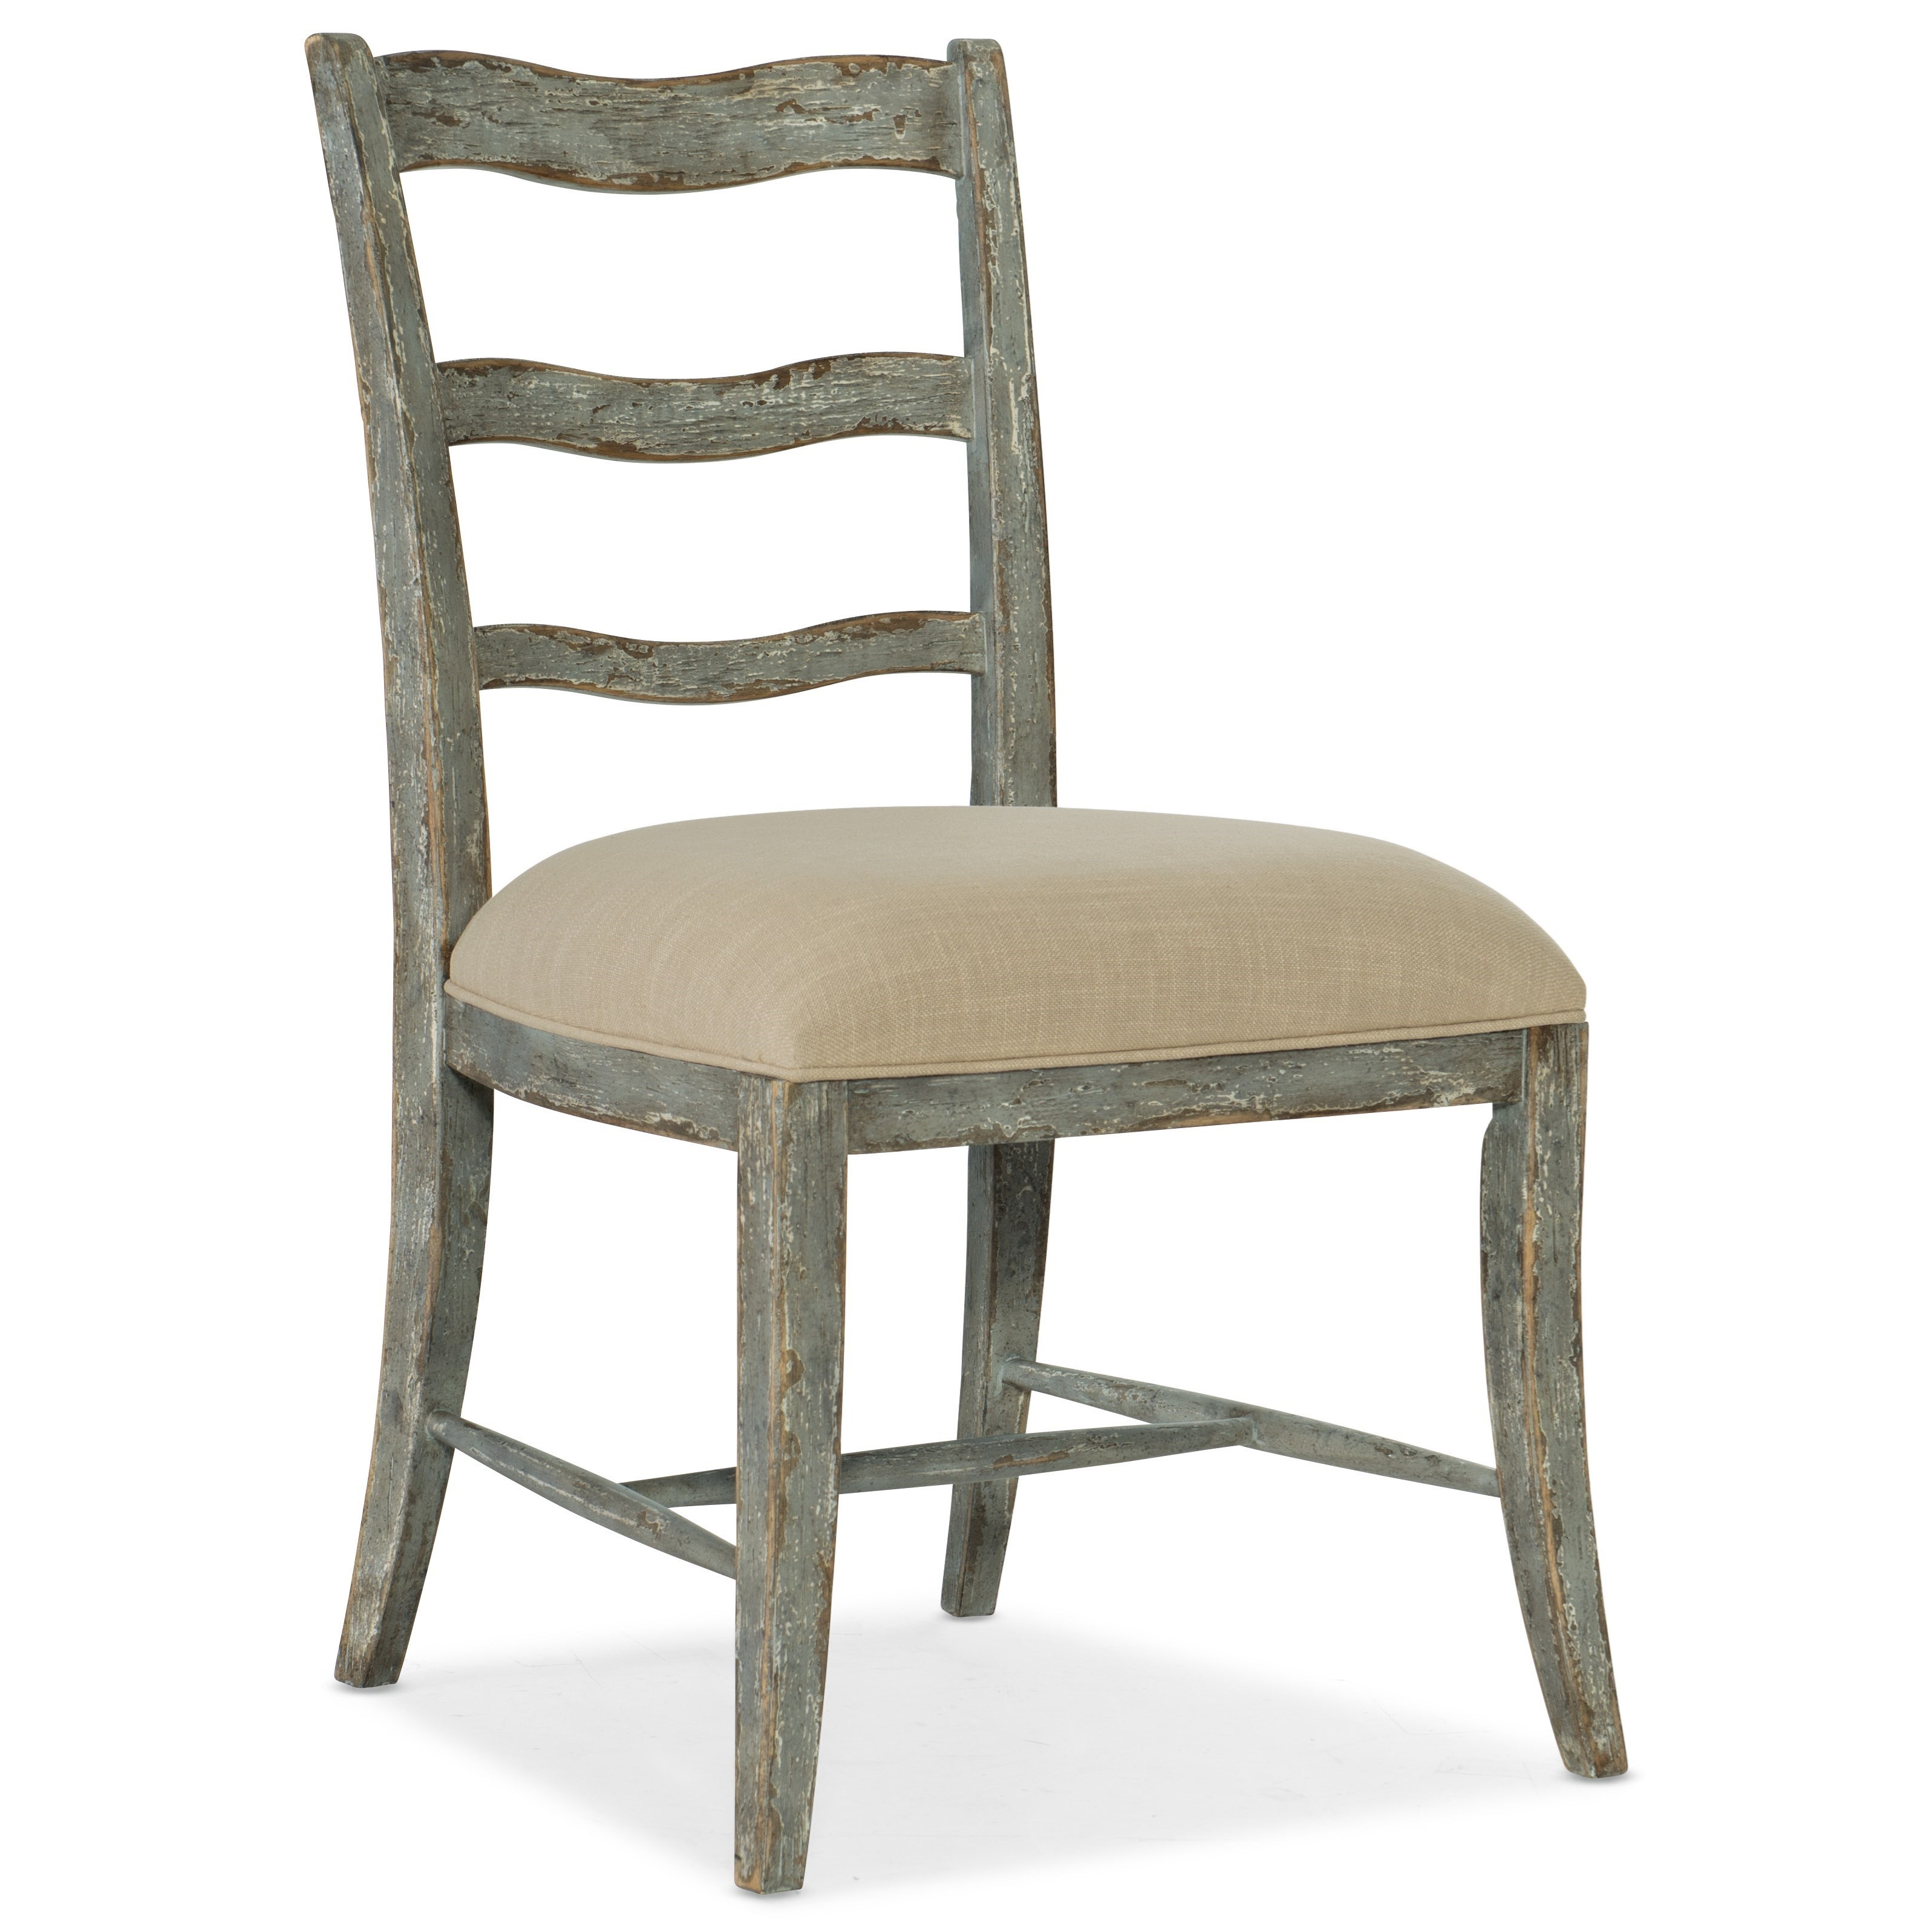 Alfresco La Riva Upholstered Seat Side Chair by Hooker Furniture at Fisher Home Furnishings